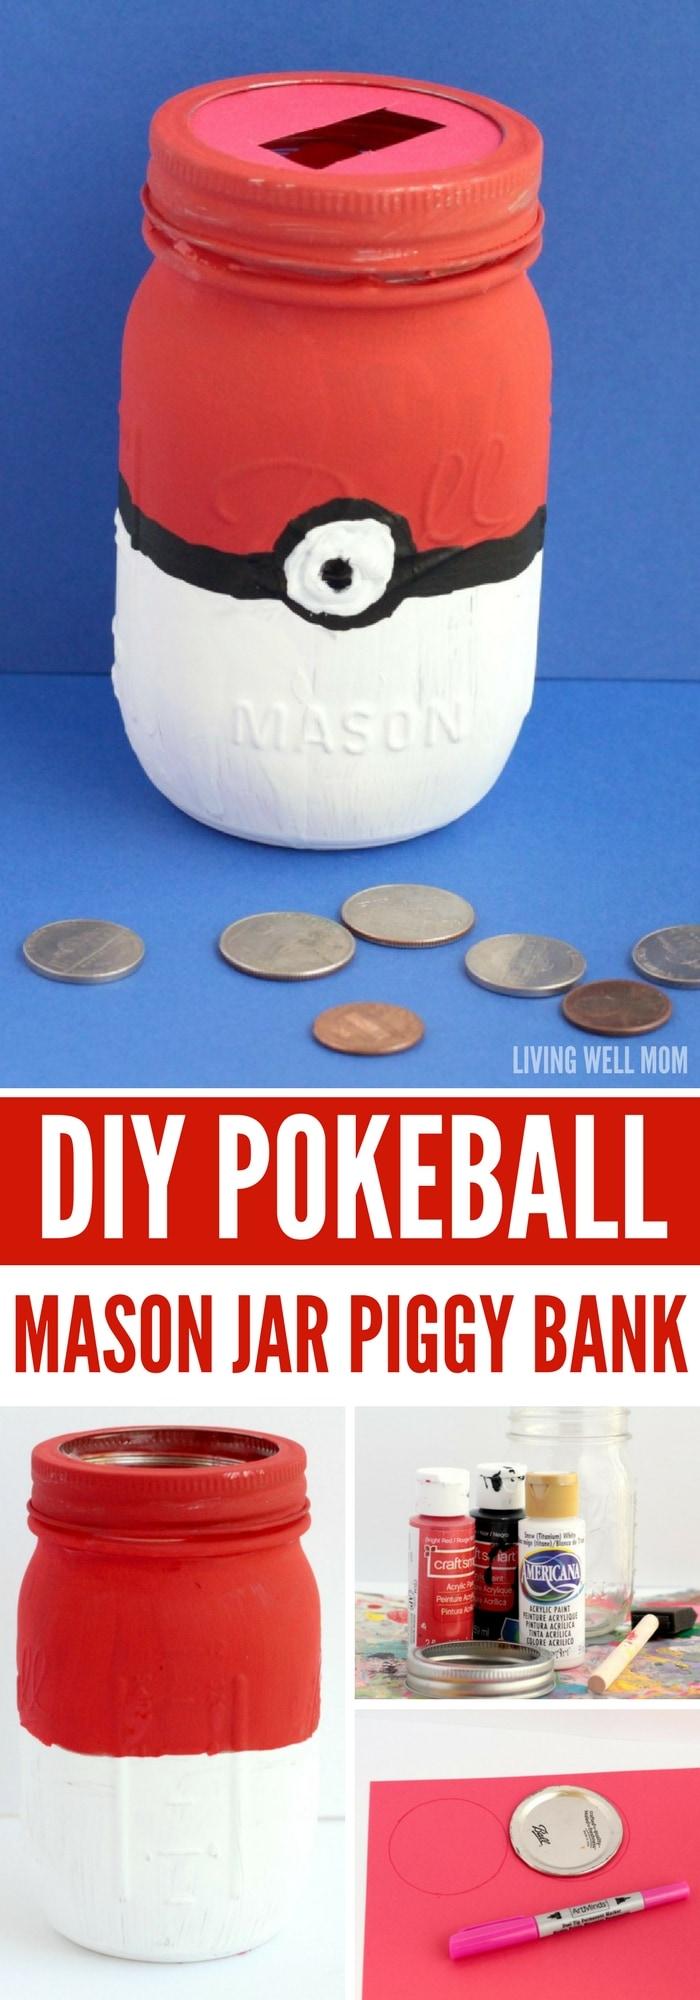 How to make a pokeball mason jar piggy bank for Michaels crafts hours today